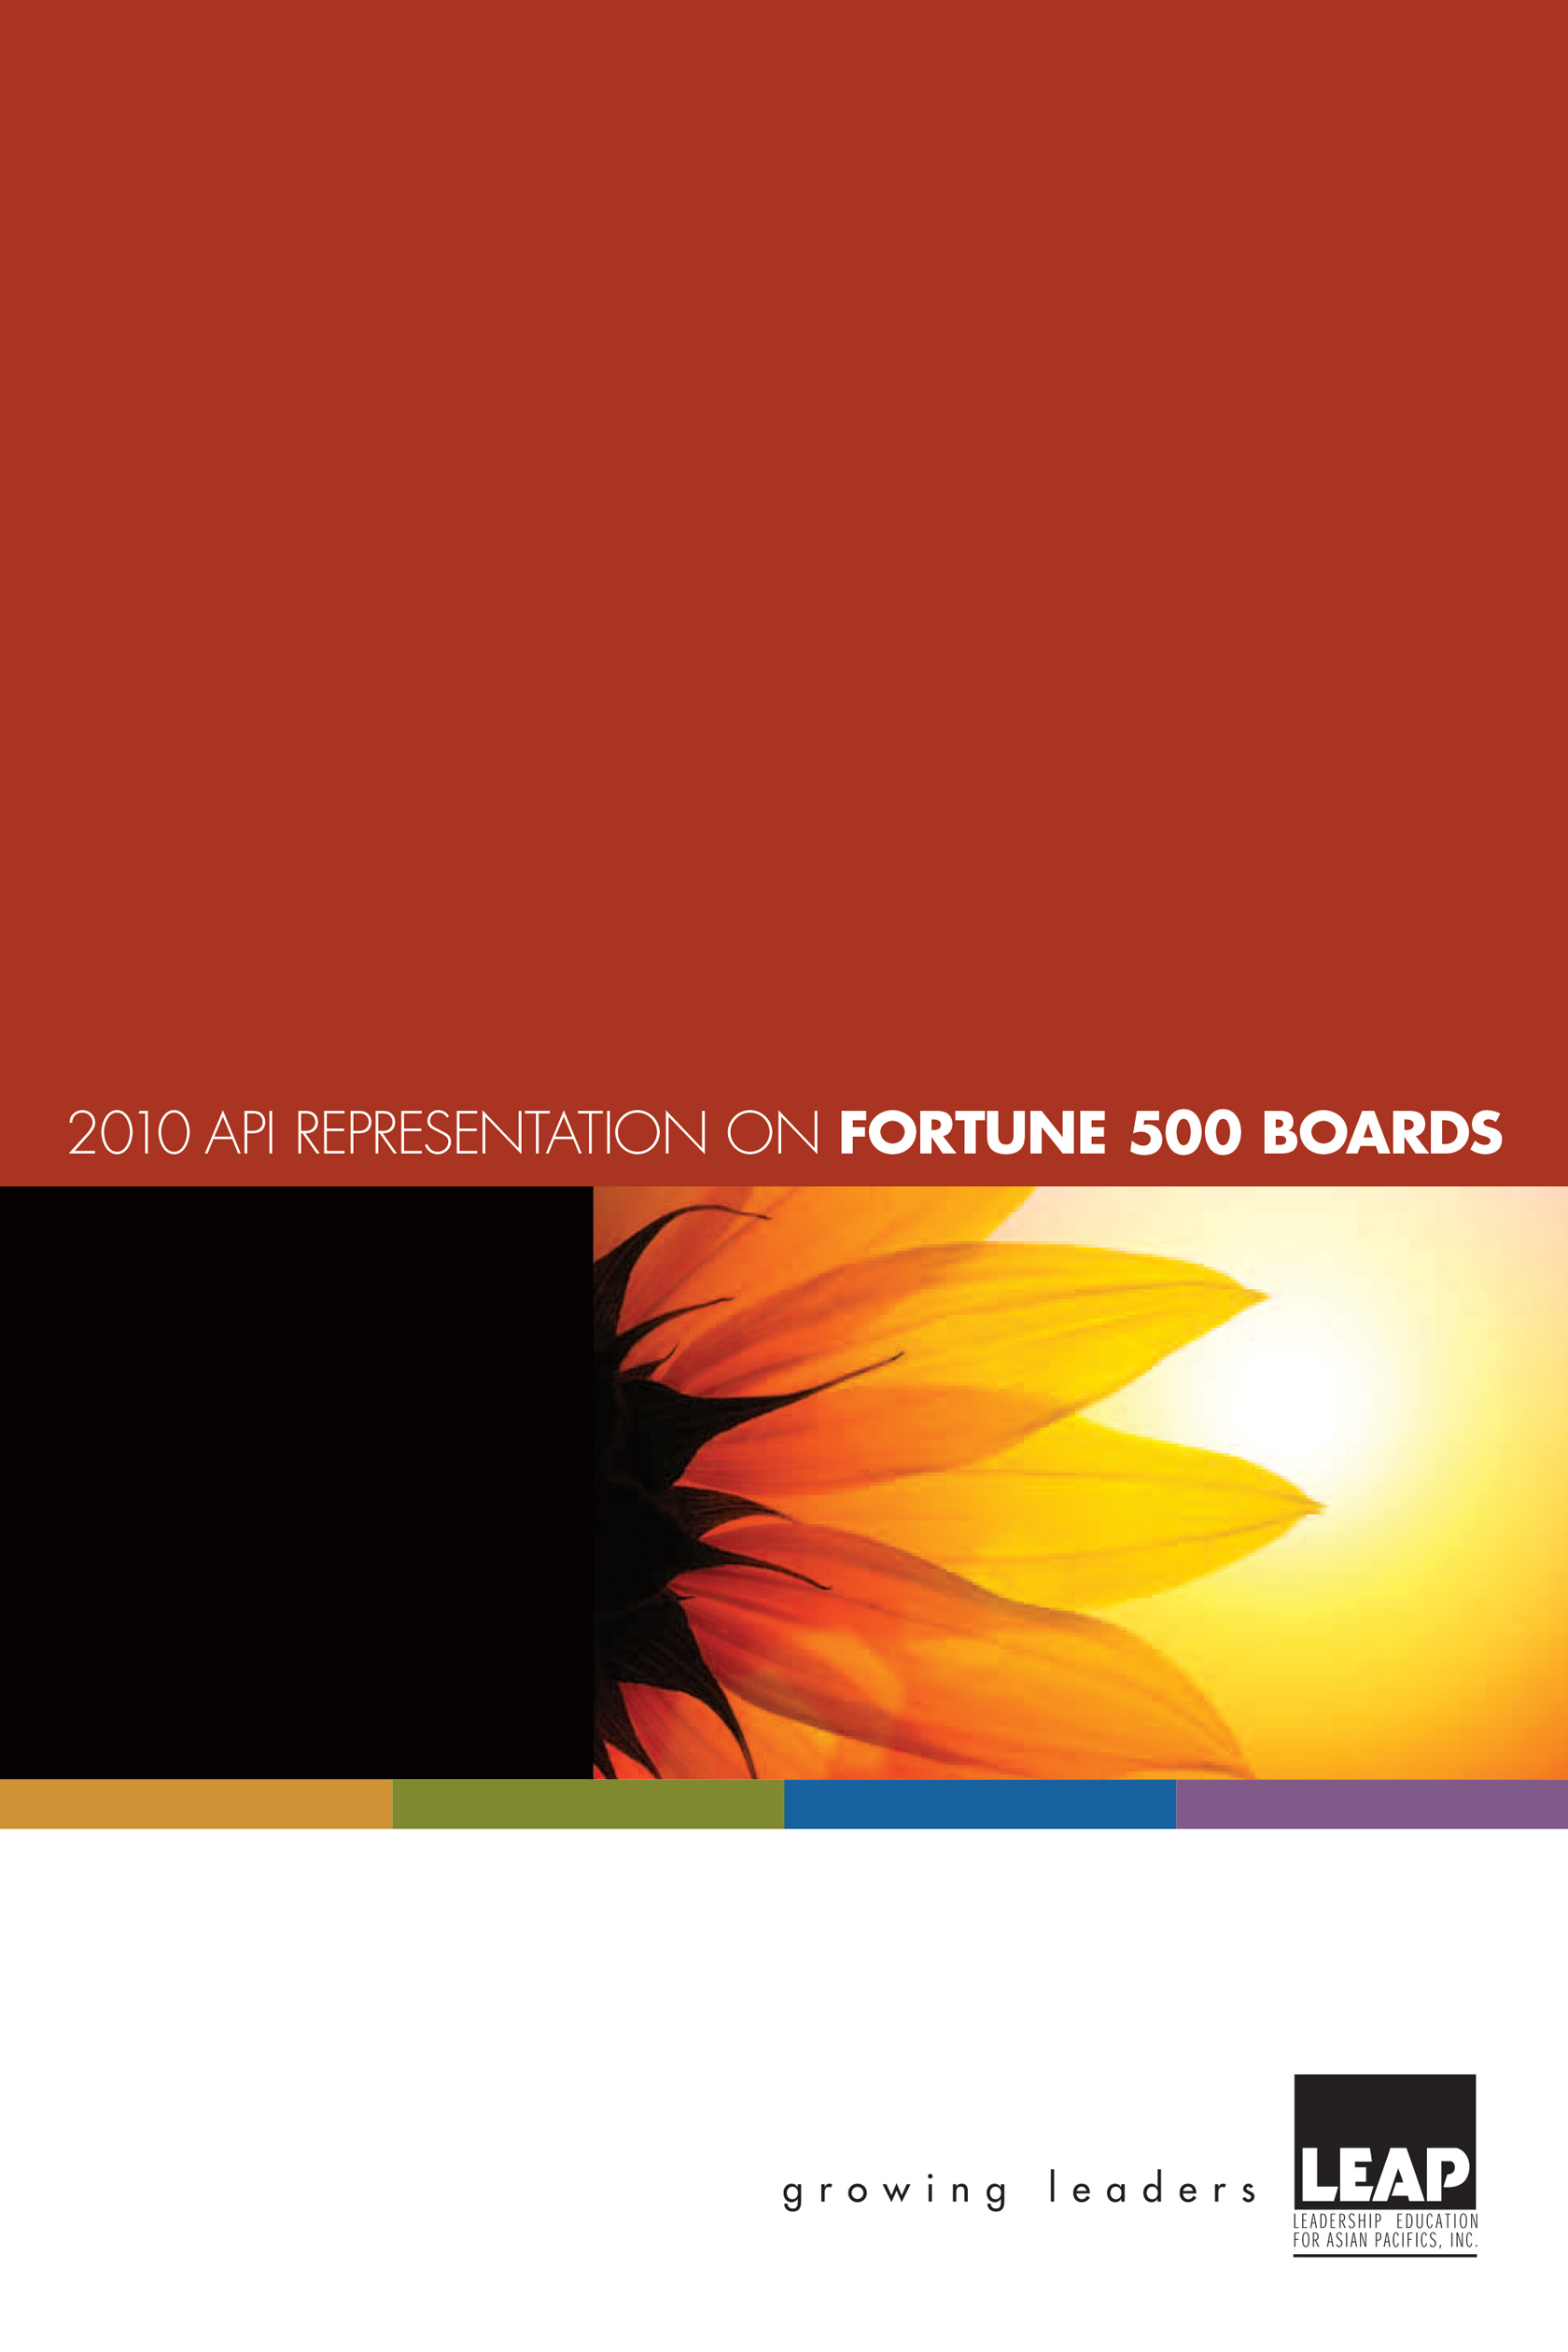 2010-LEAP-Fortune-500-Boards-Cover.jpg